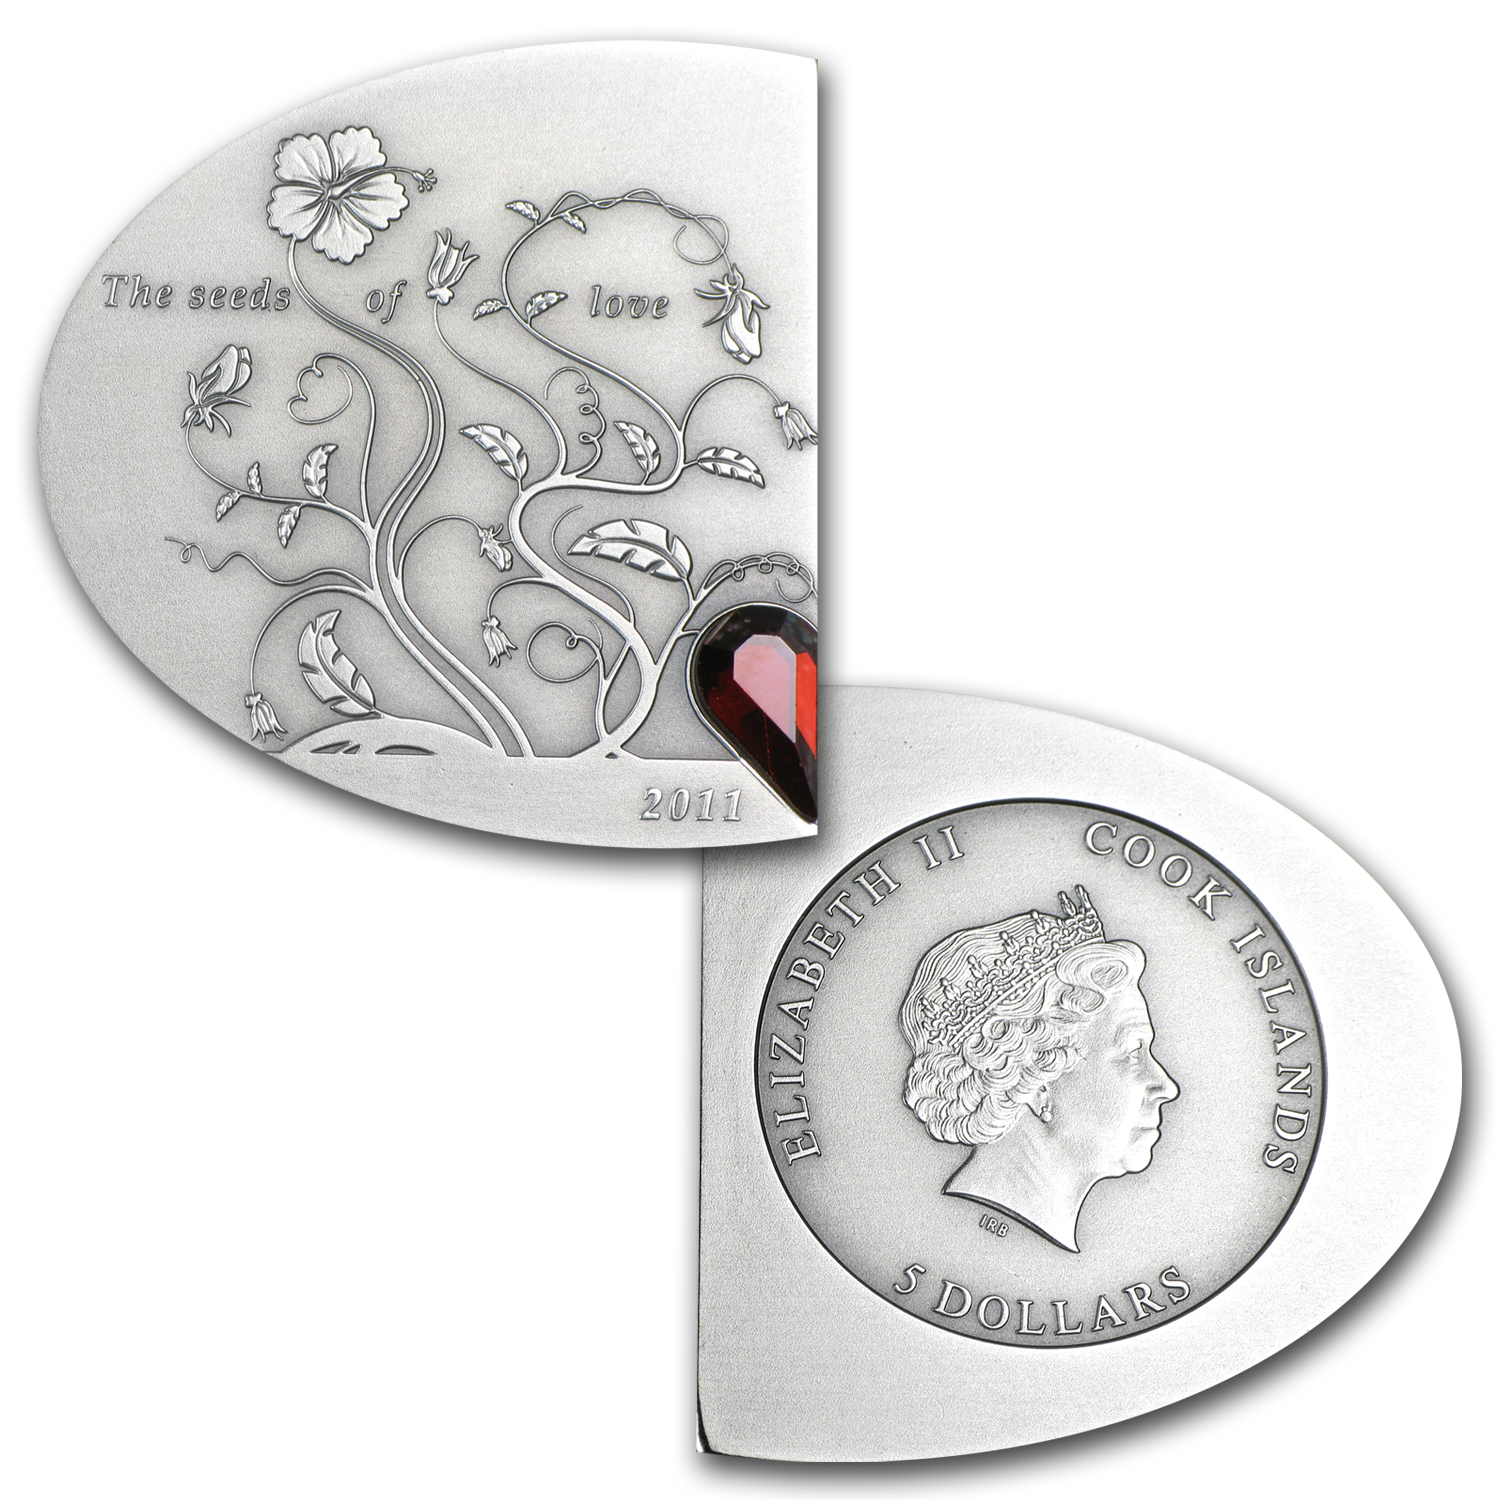 2011 Cook Islands Silver $5 The Seeds of Love (Antique Finish)